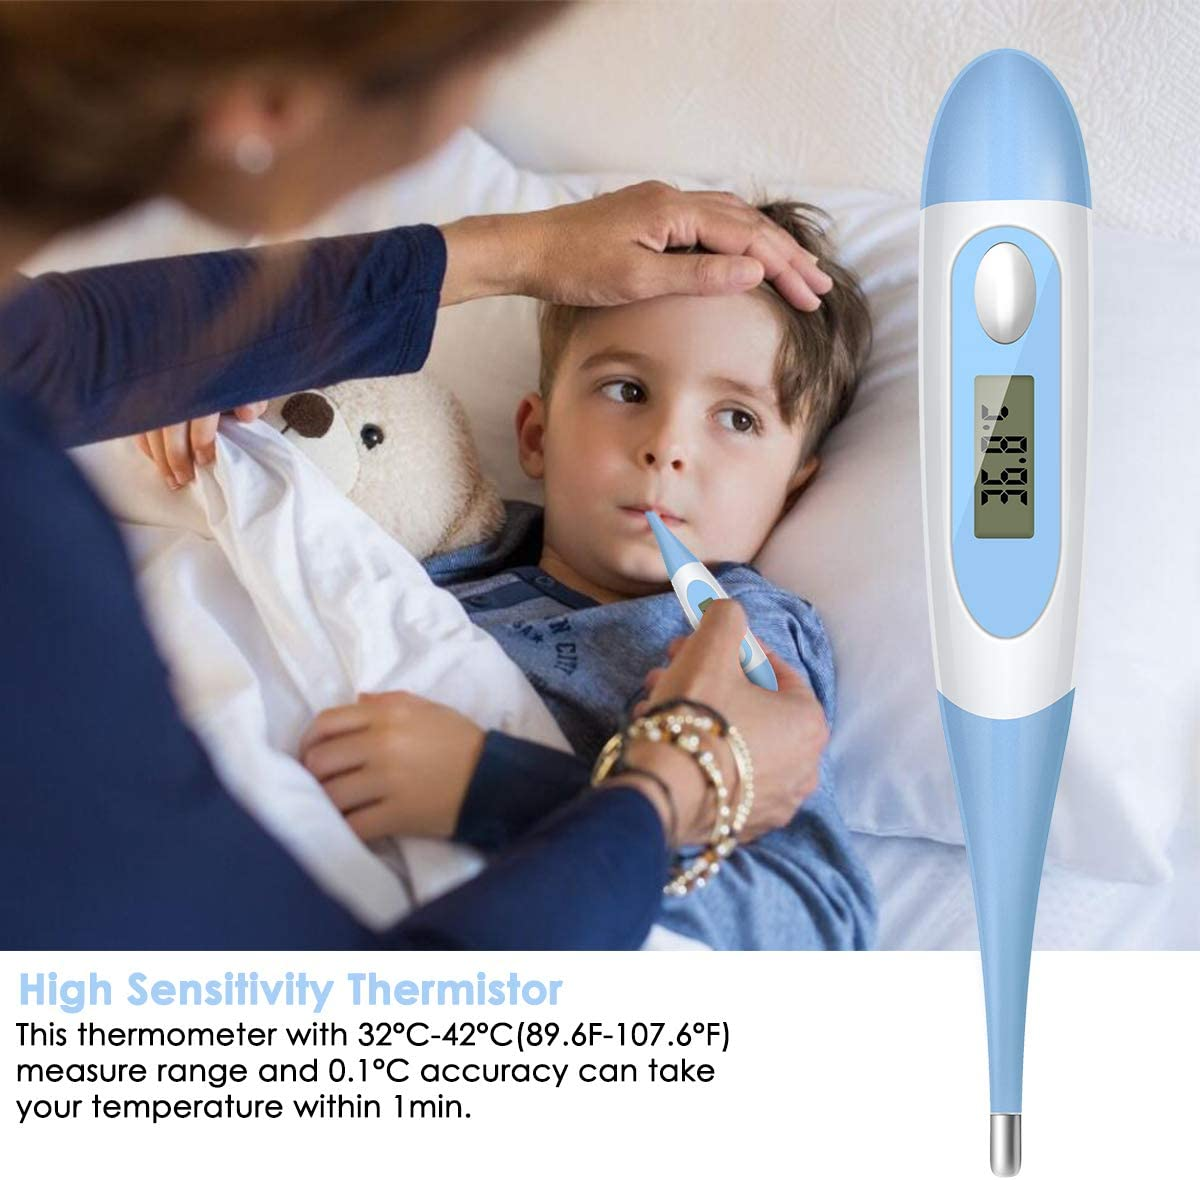 DaMohony Digital Body Thermometer Flexible Tip Armpit and Oral Temperature Meter with Fever Alarm LCD Display Thermometer for Baby Kids Adult